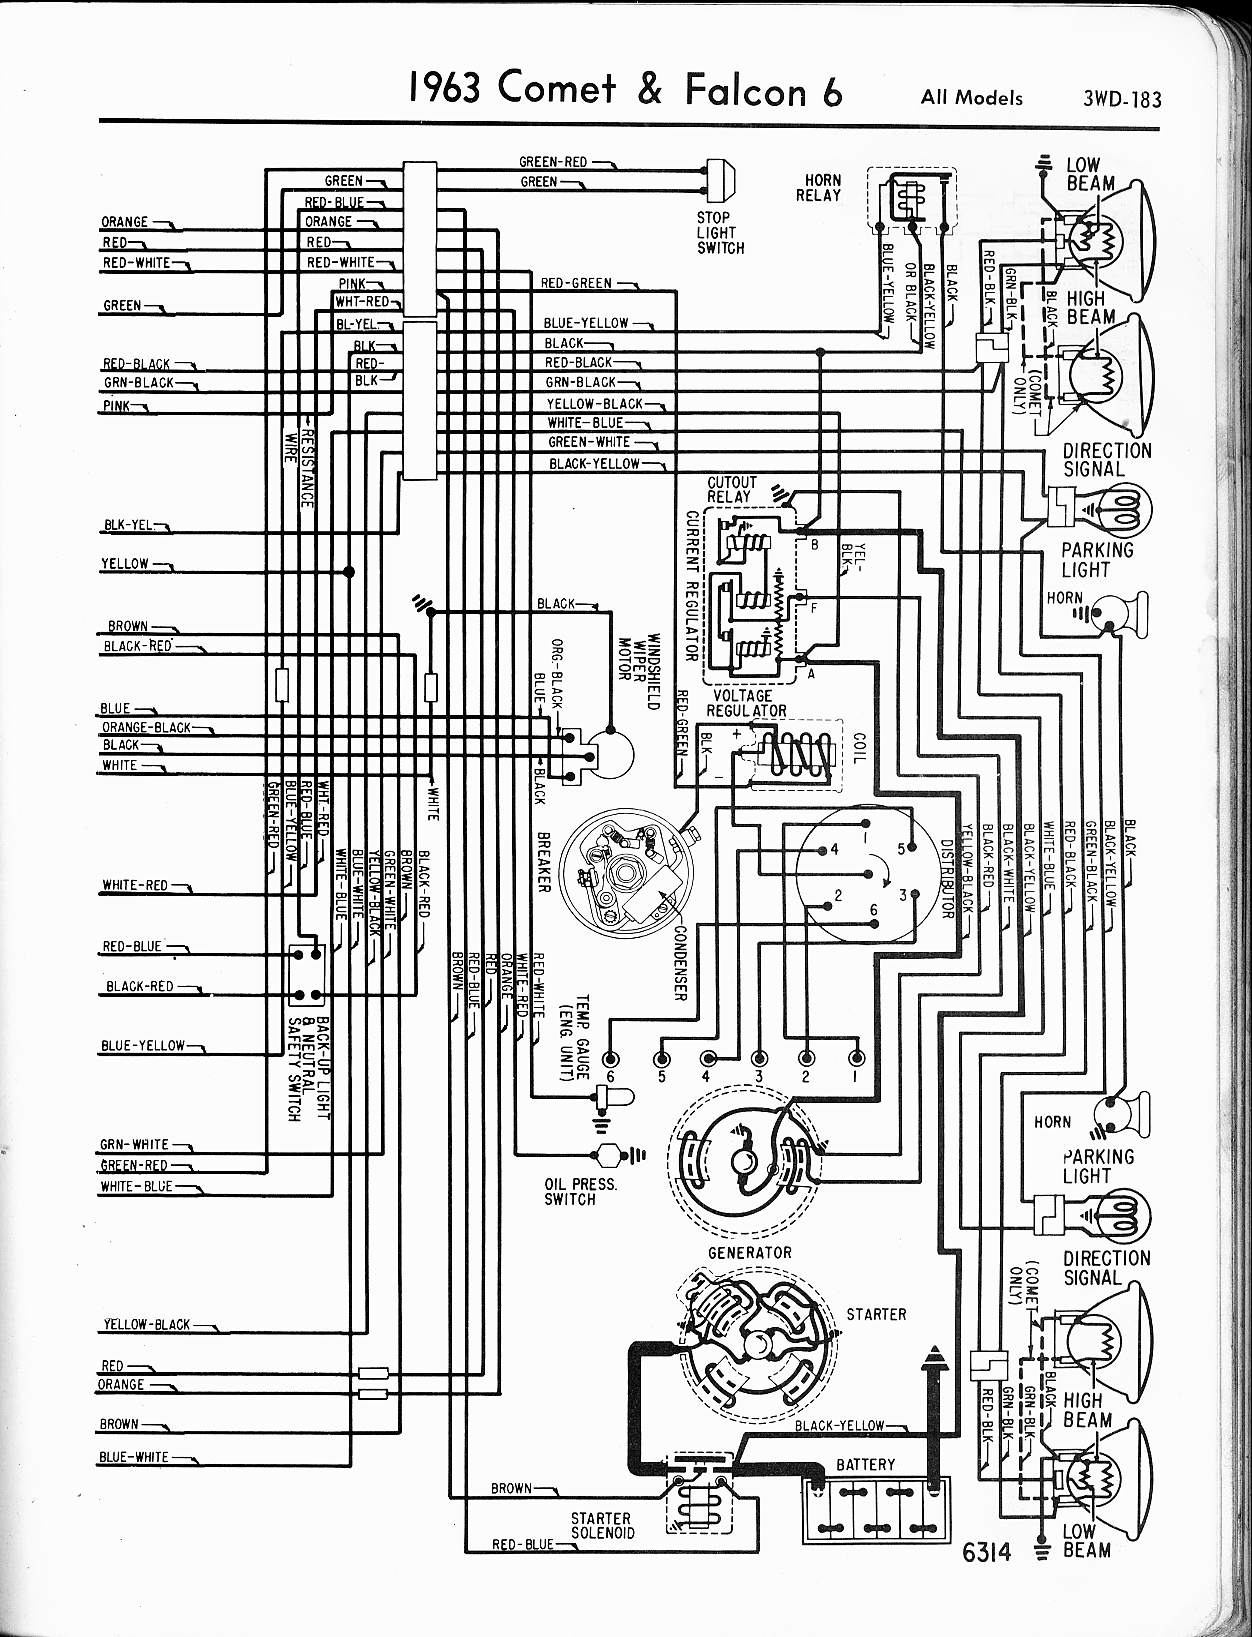 MWire5765 183 1963 ranchero wiring diagram, anyone got one? ford muscle forums 1963 mercury comet wiring diagram at soozxer.org